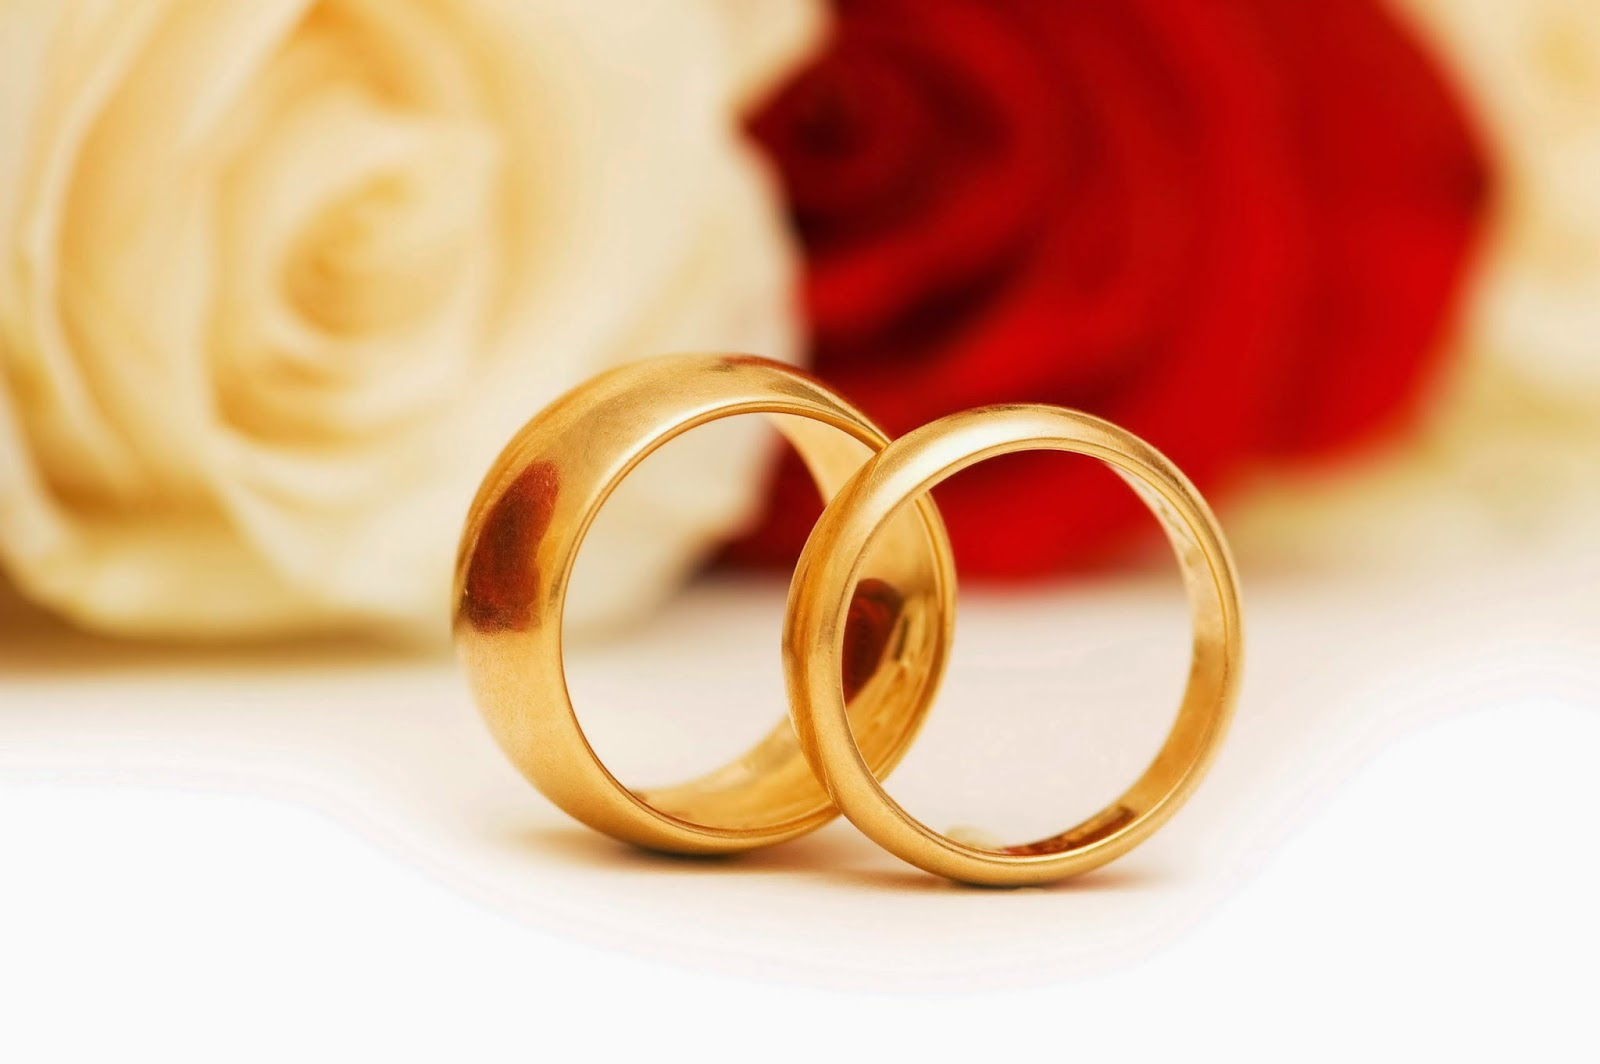 hd-wallpapers-gold-ring-wedding